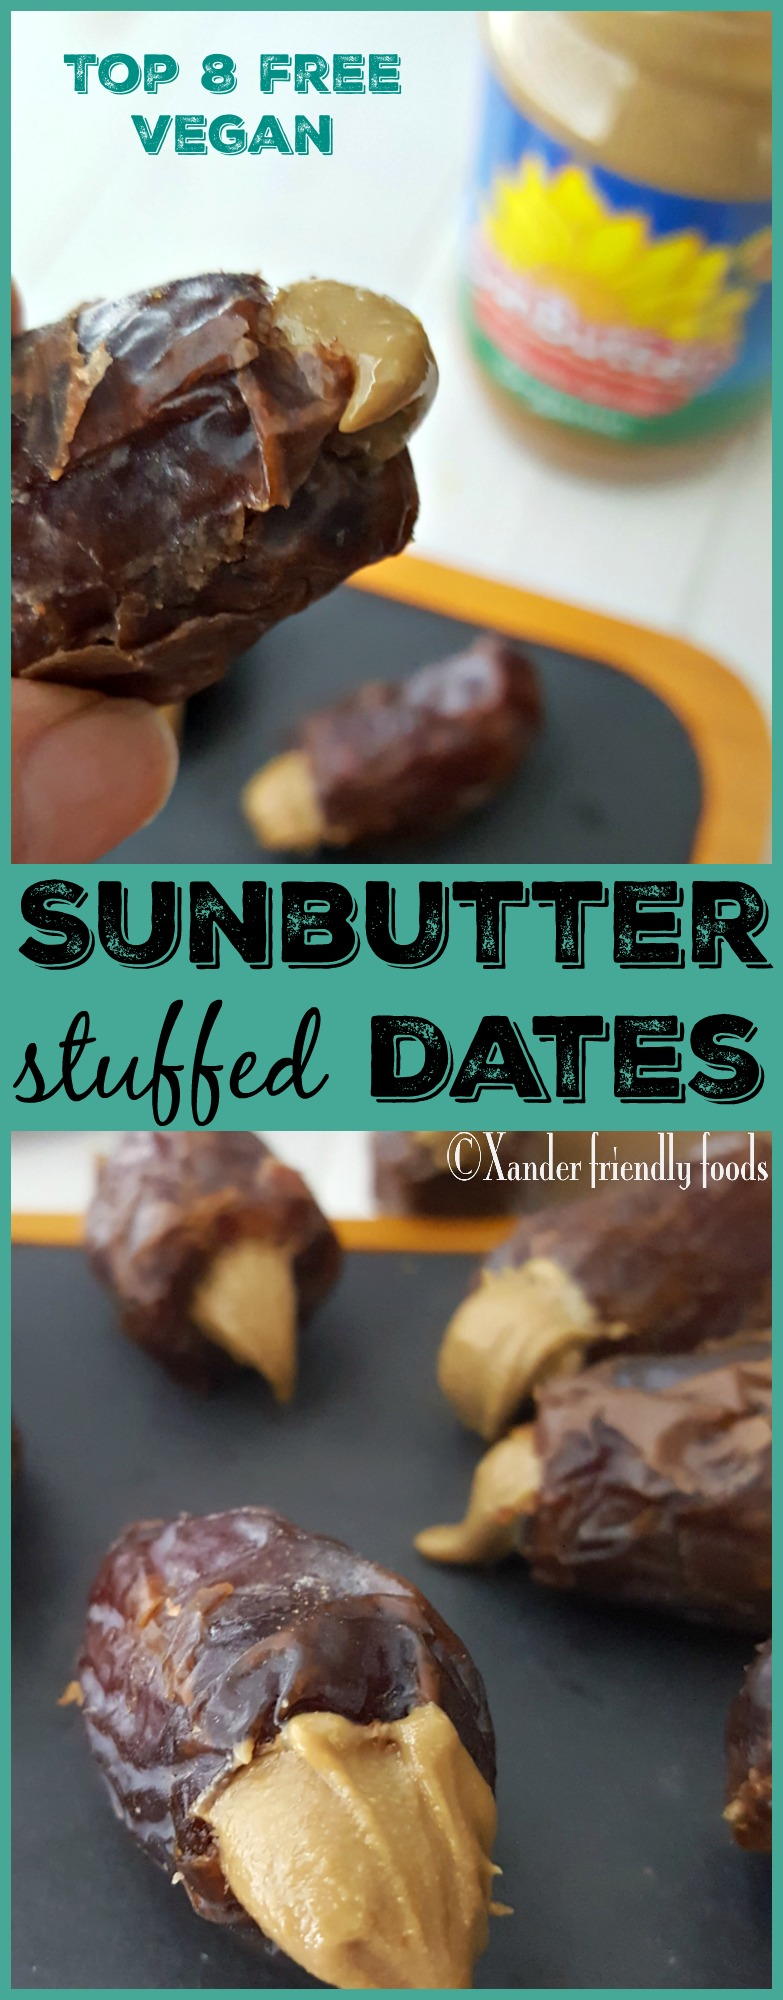 Stuffed dates collage